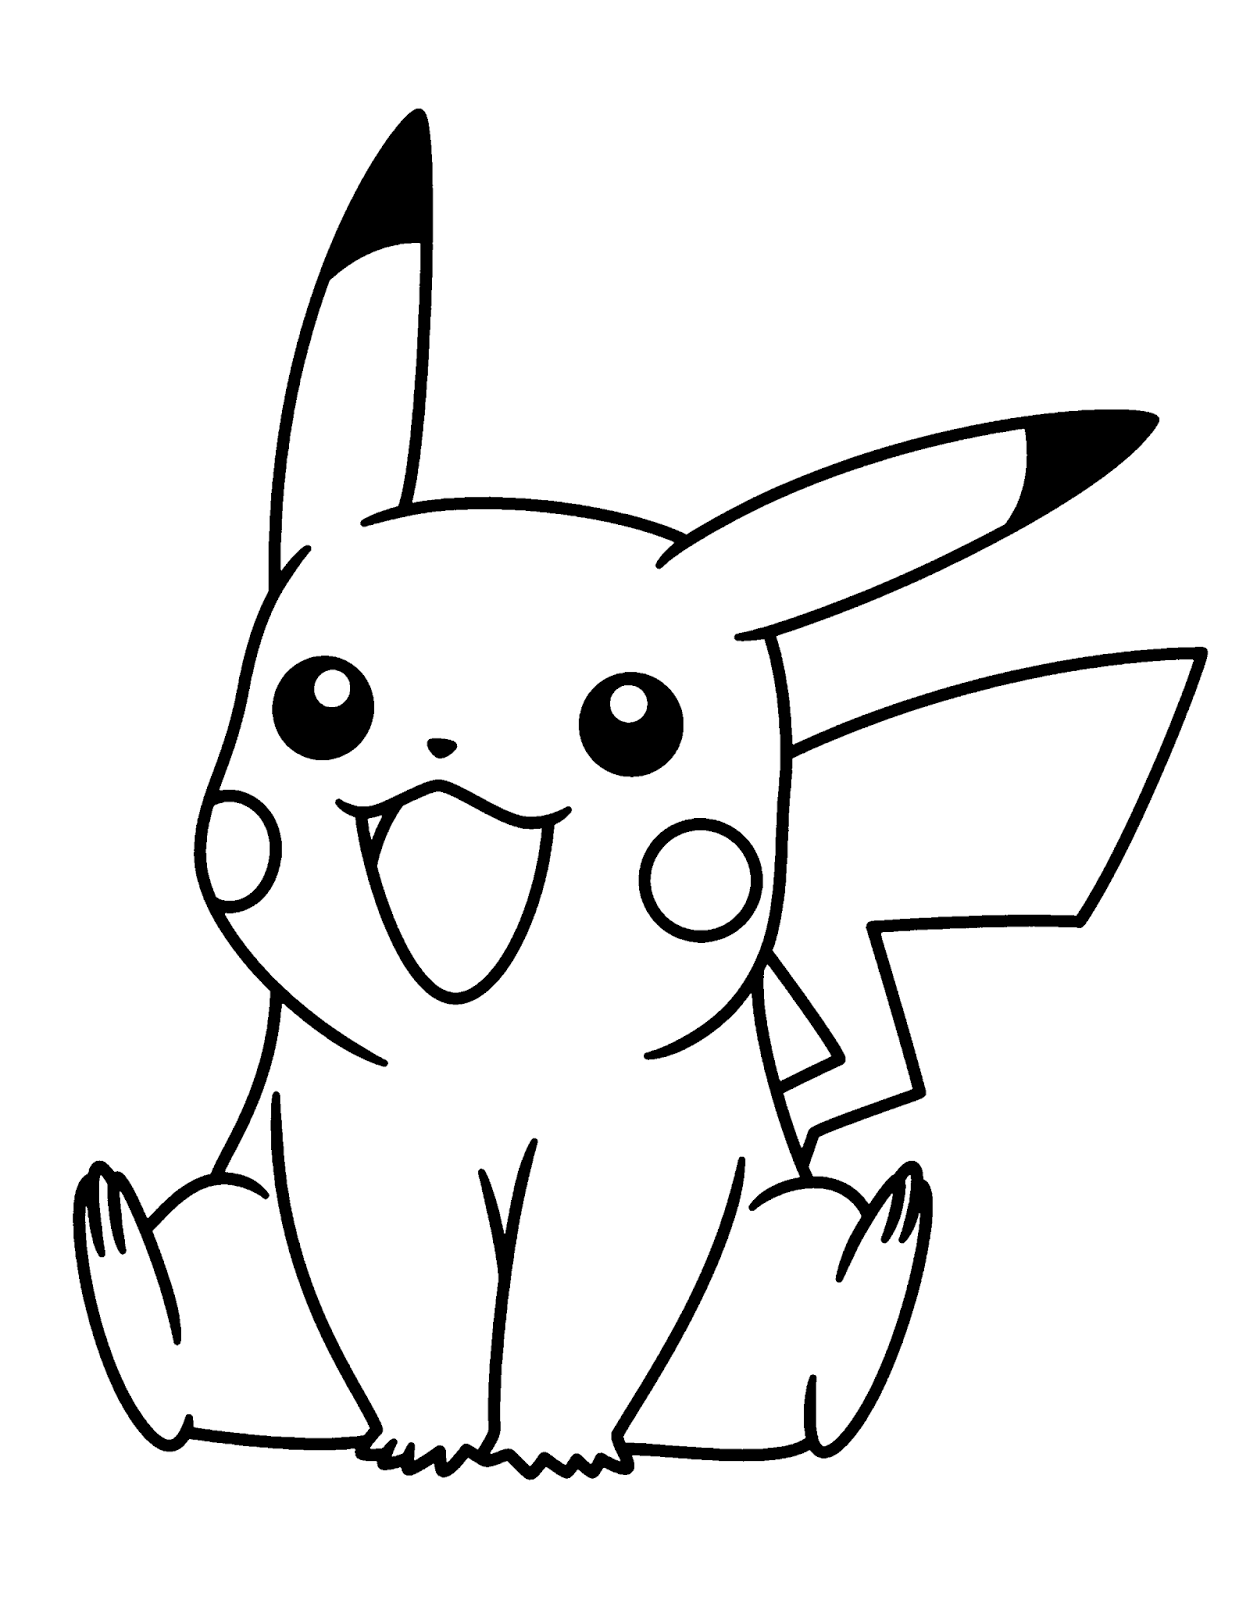 Video game coloring pages to download and print for free